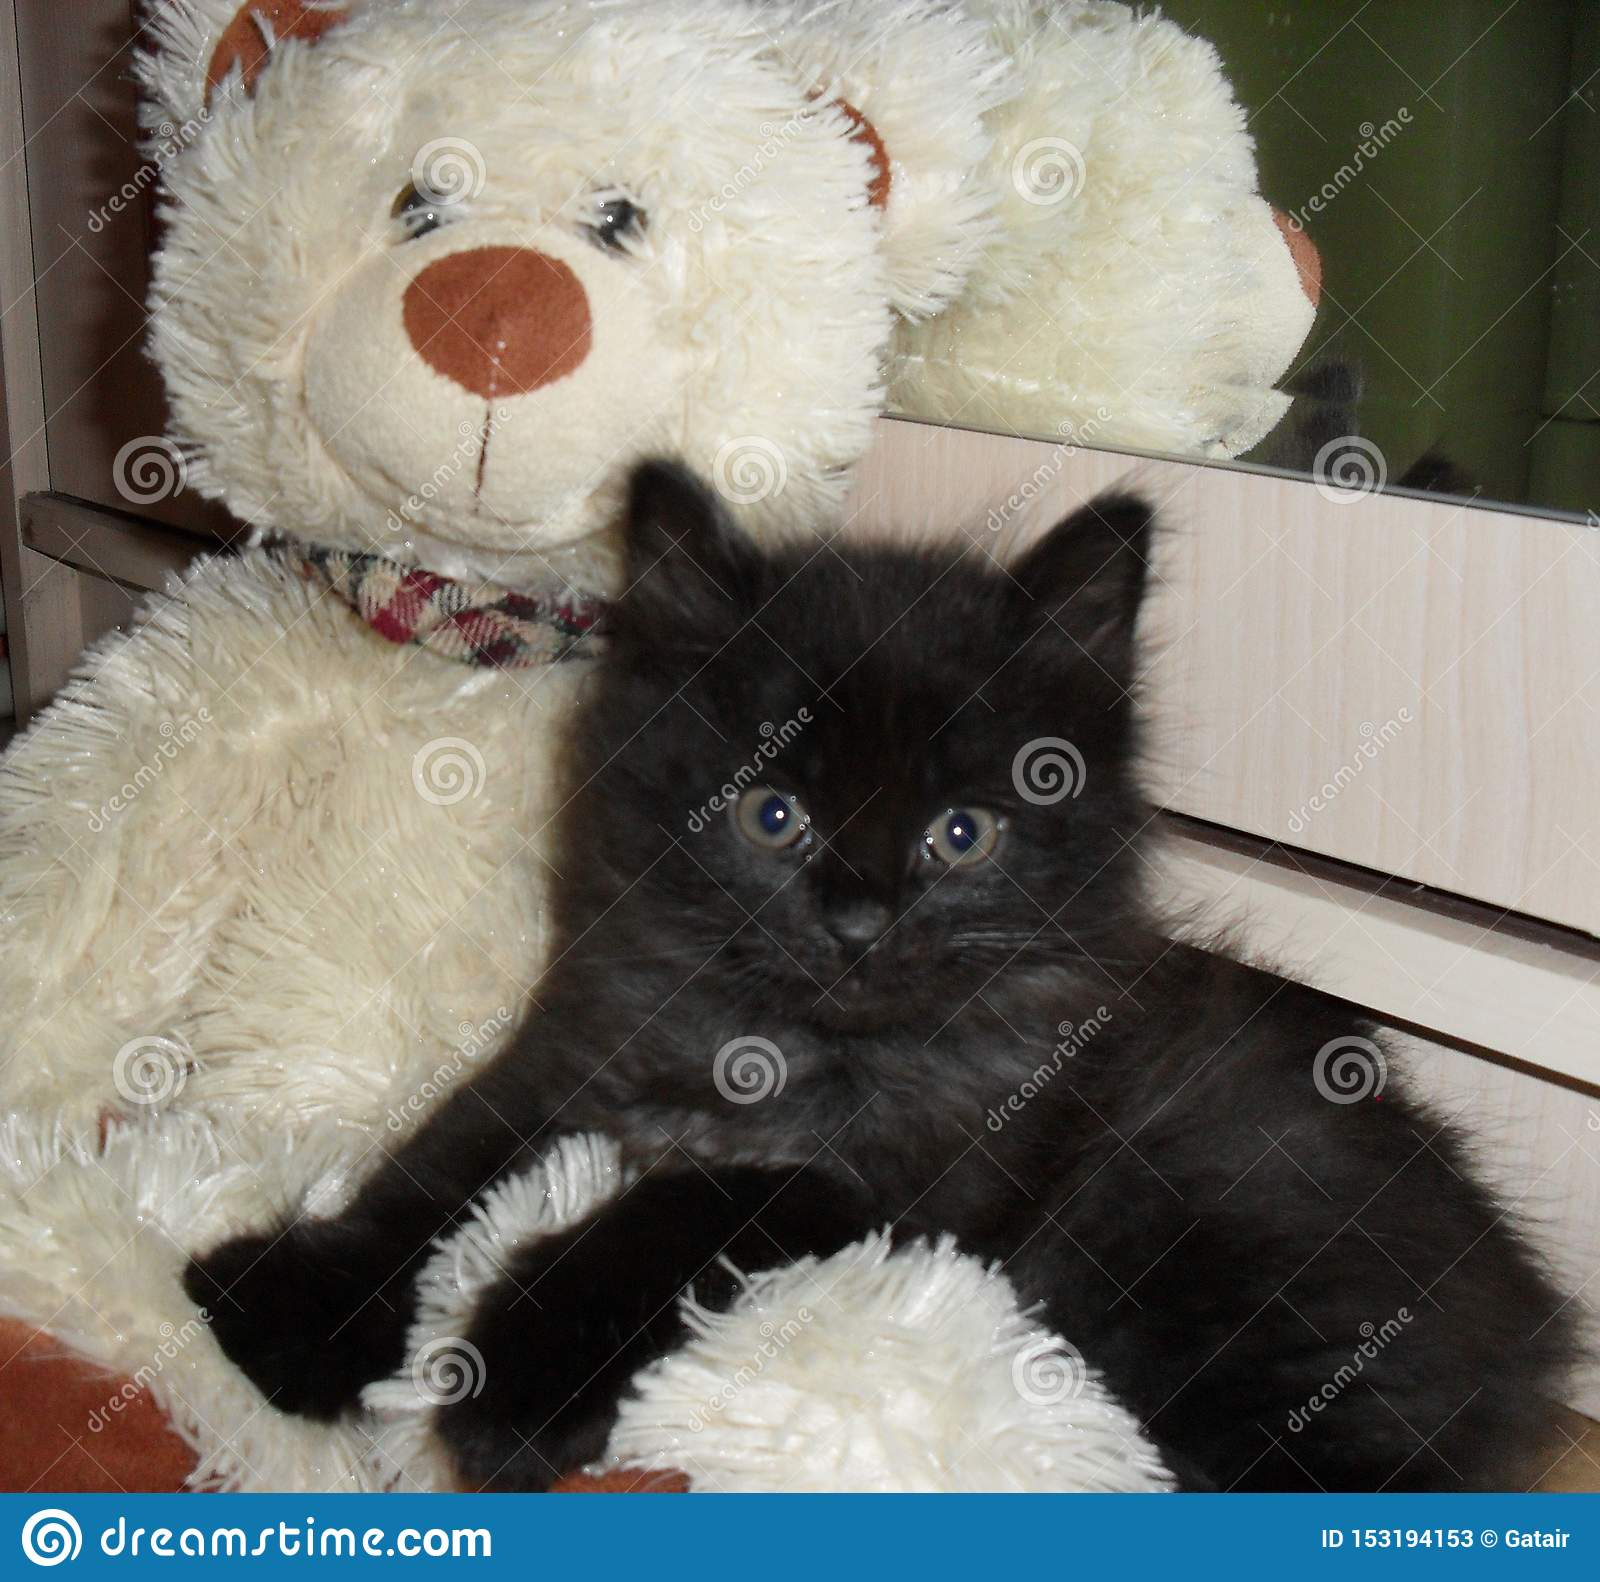 Black fluffy kitten sit with a white teddy bear